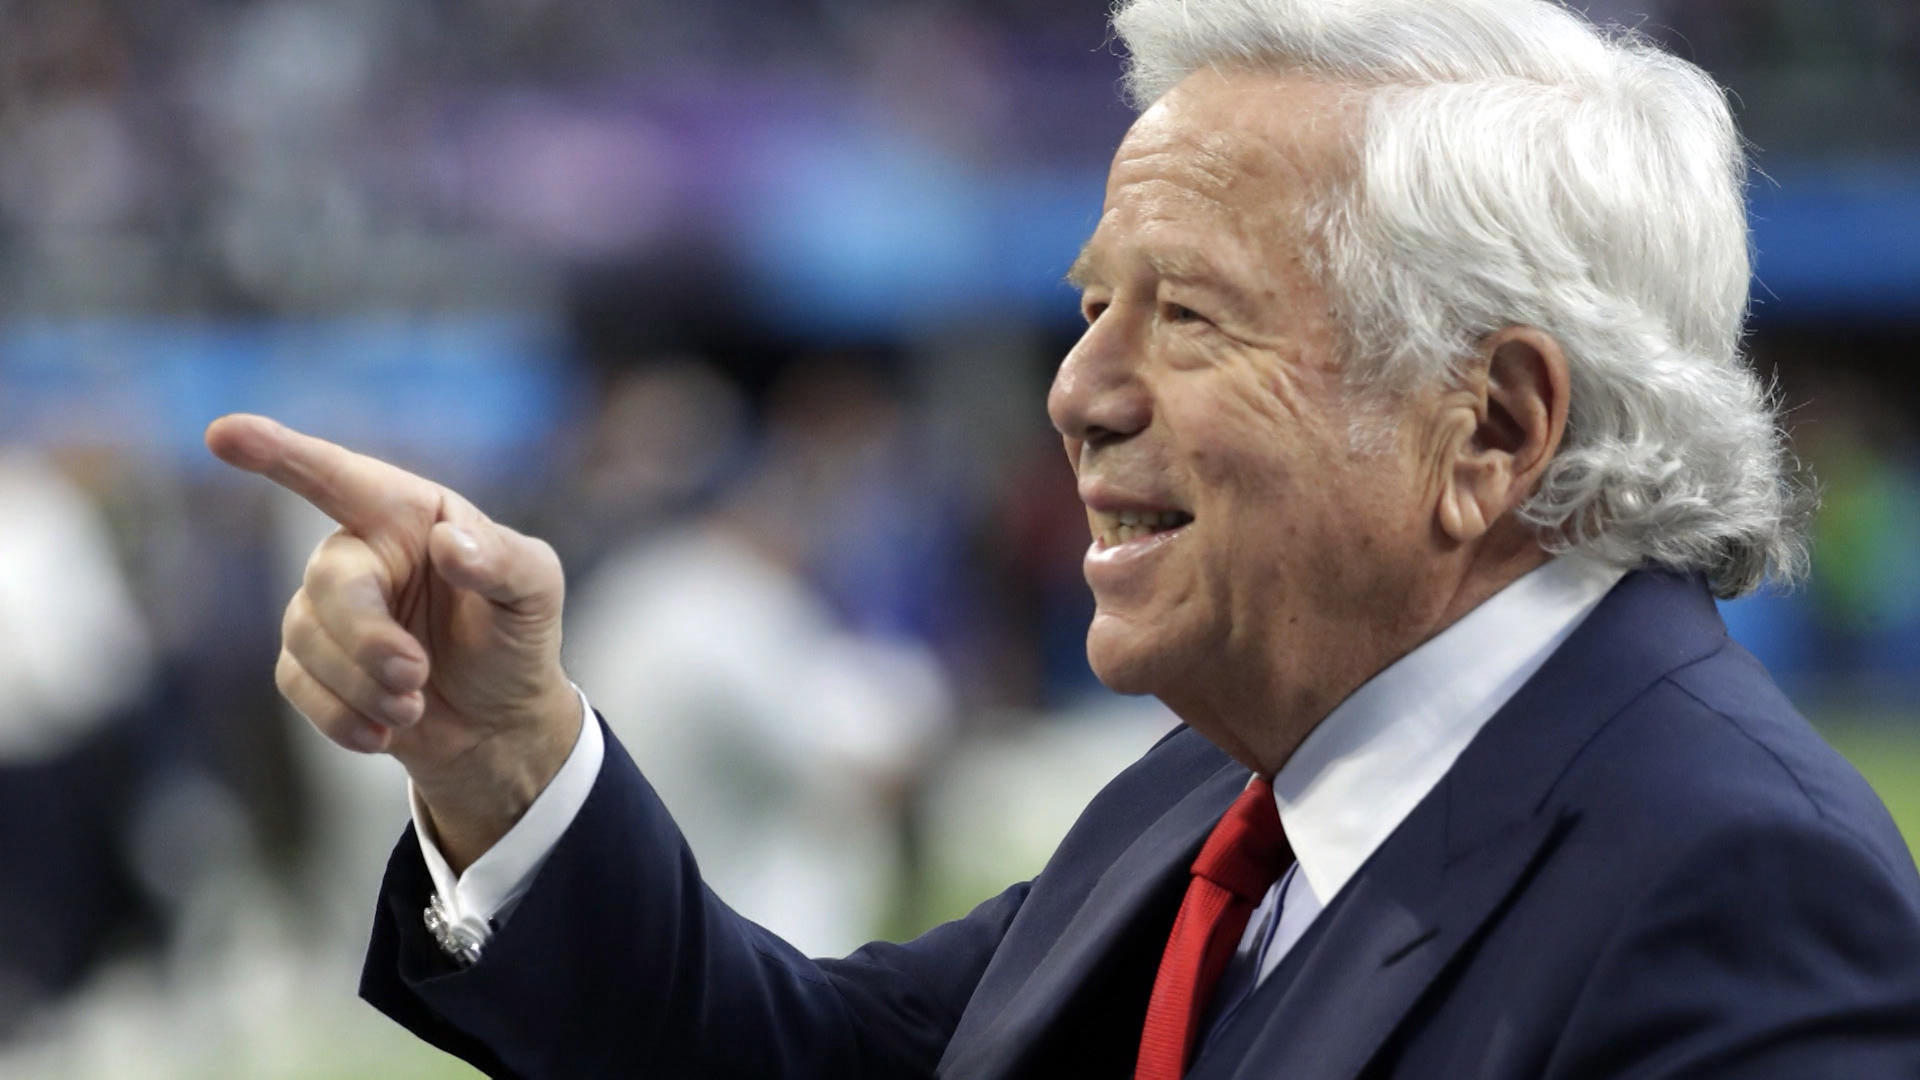 Patriots owner Robert Kraft breaks silence, offers first public statement since being charged